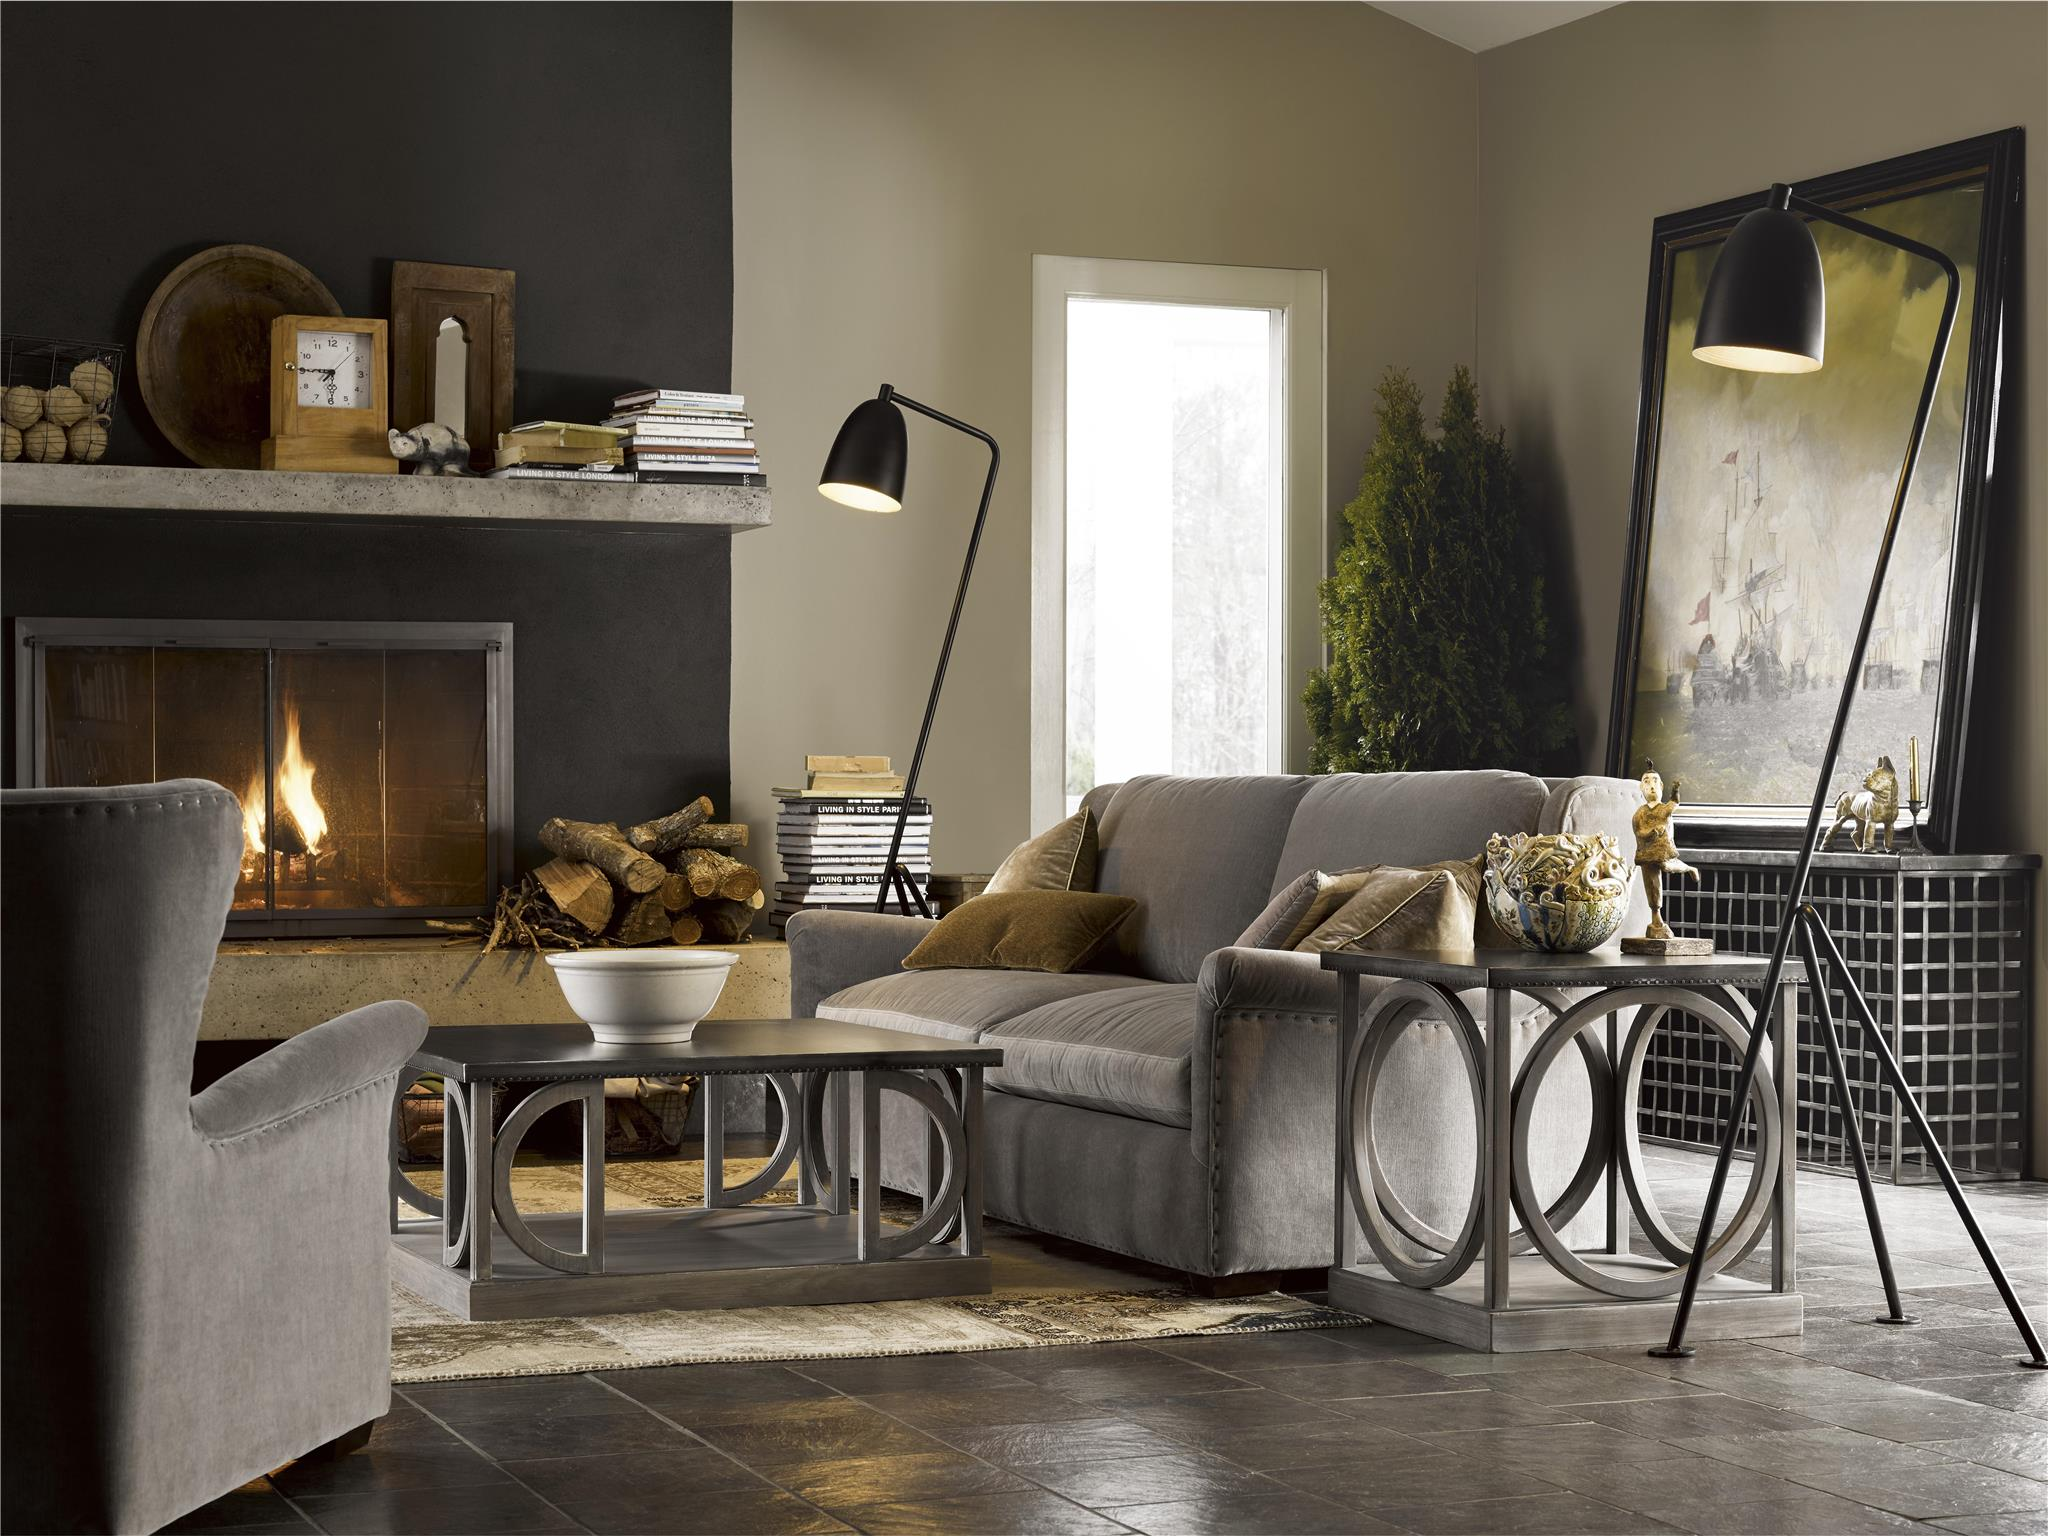 universal furniture curated carlton end table tables loading zoom nordstrom black pipe workbench kitchen top replacement bronze lady coffee metal frame wood bedroom sets montreal